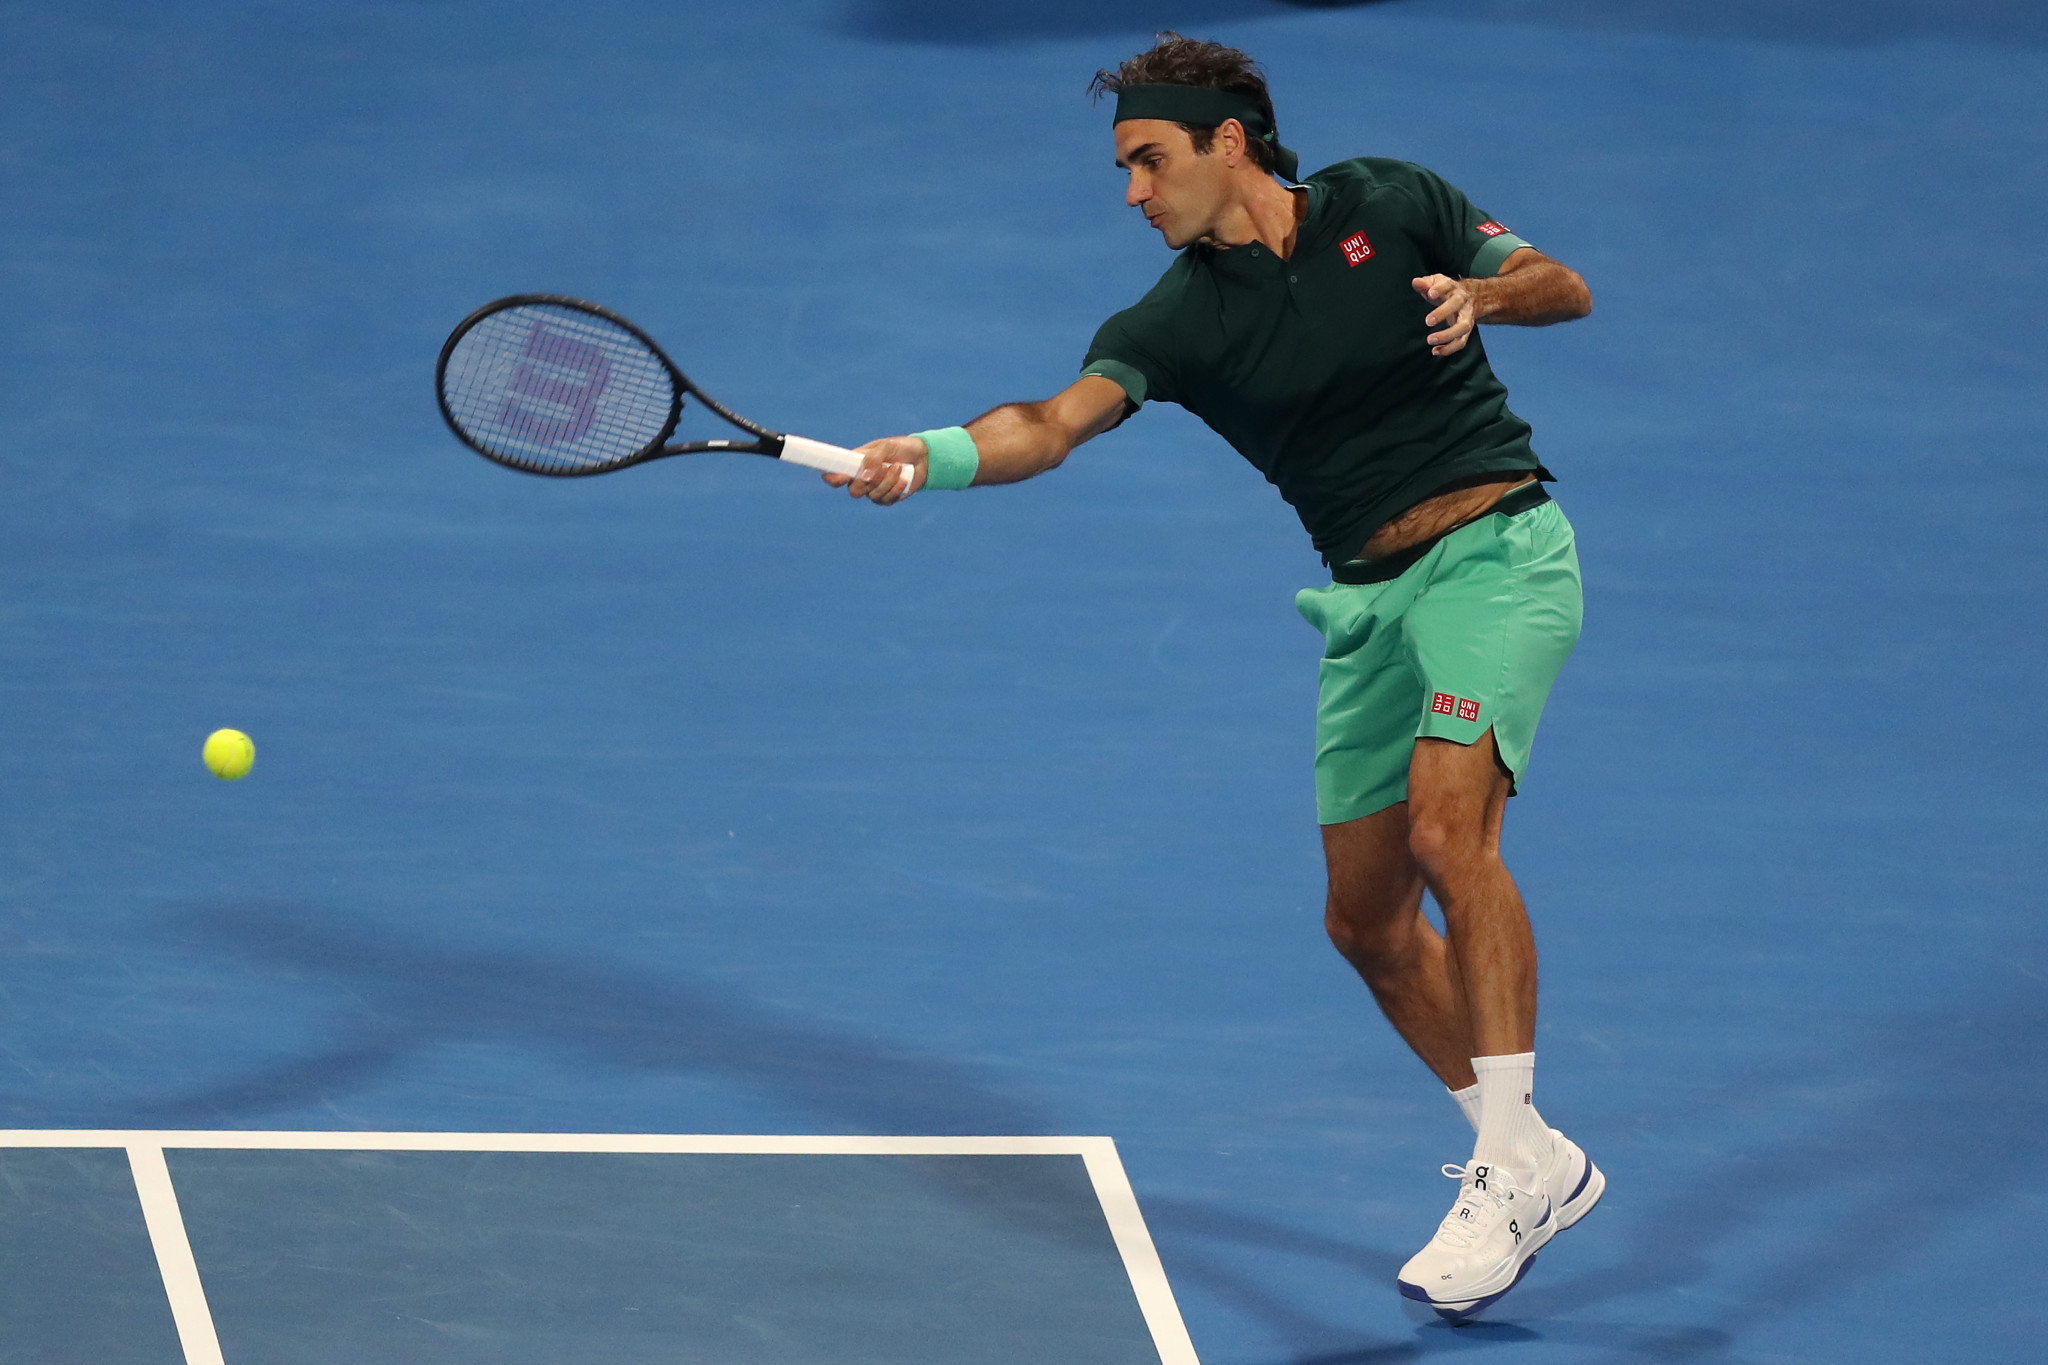 Roger Federer is hoping to claim his first Olympic singles gold medal ©Getty Images